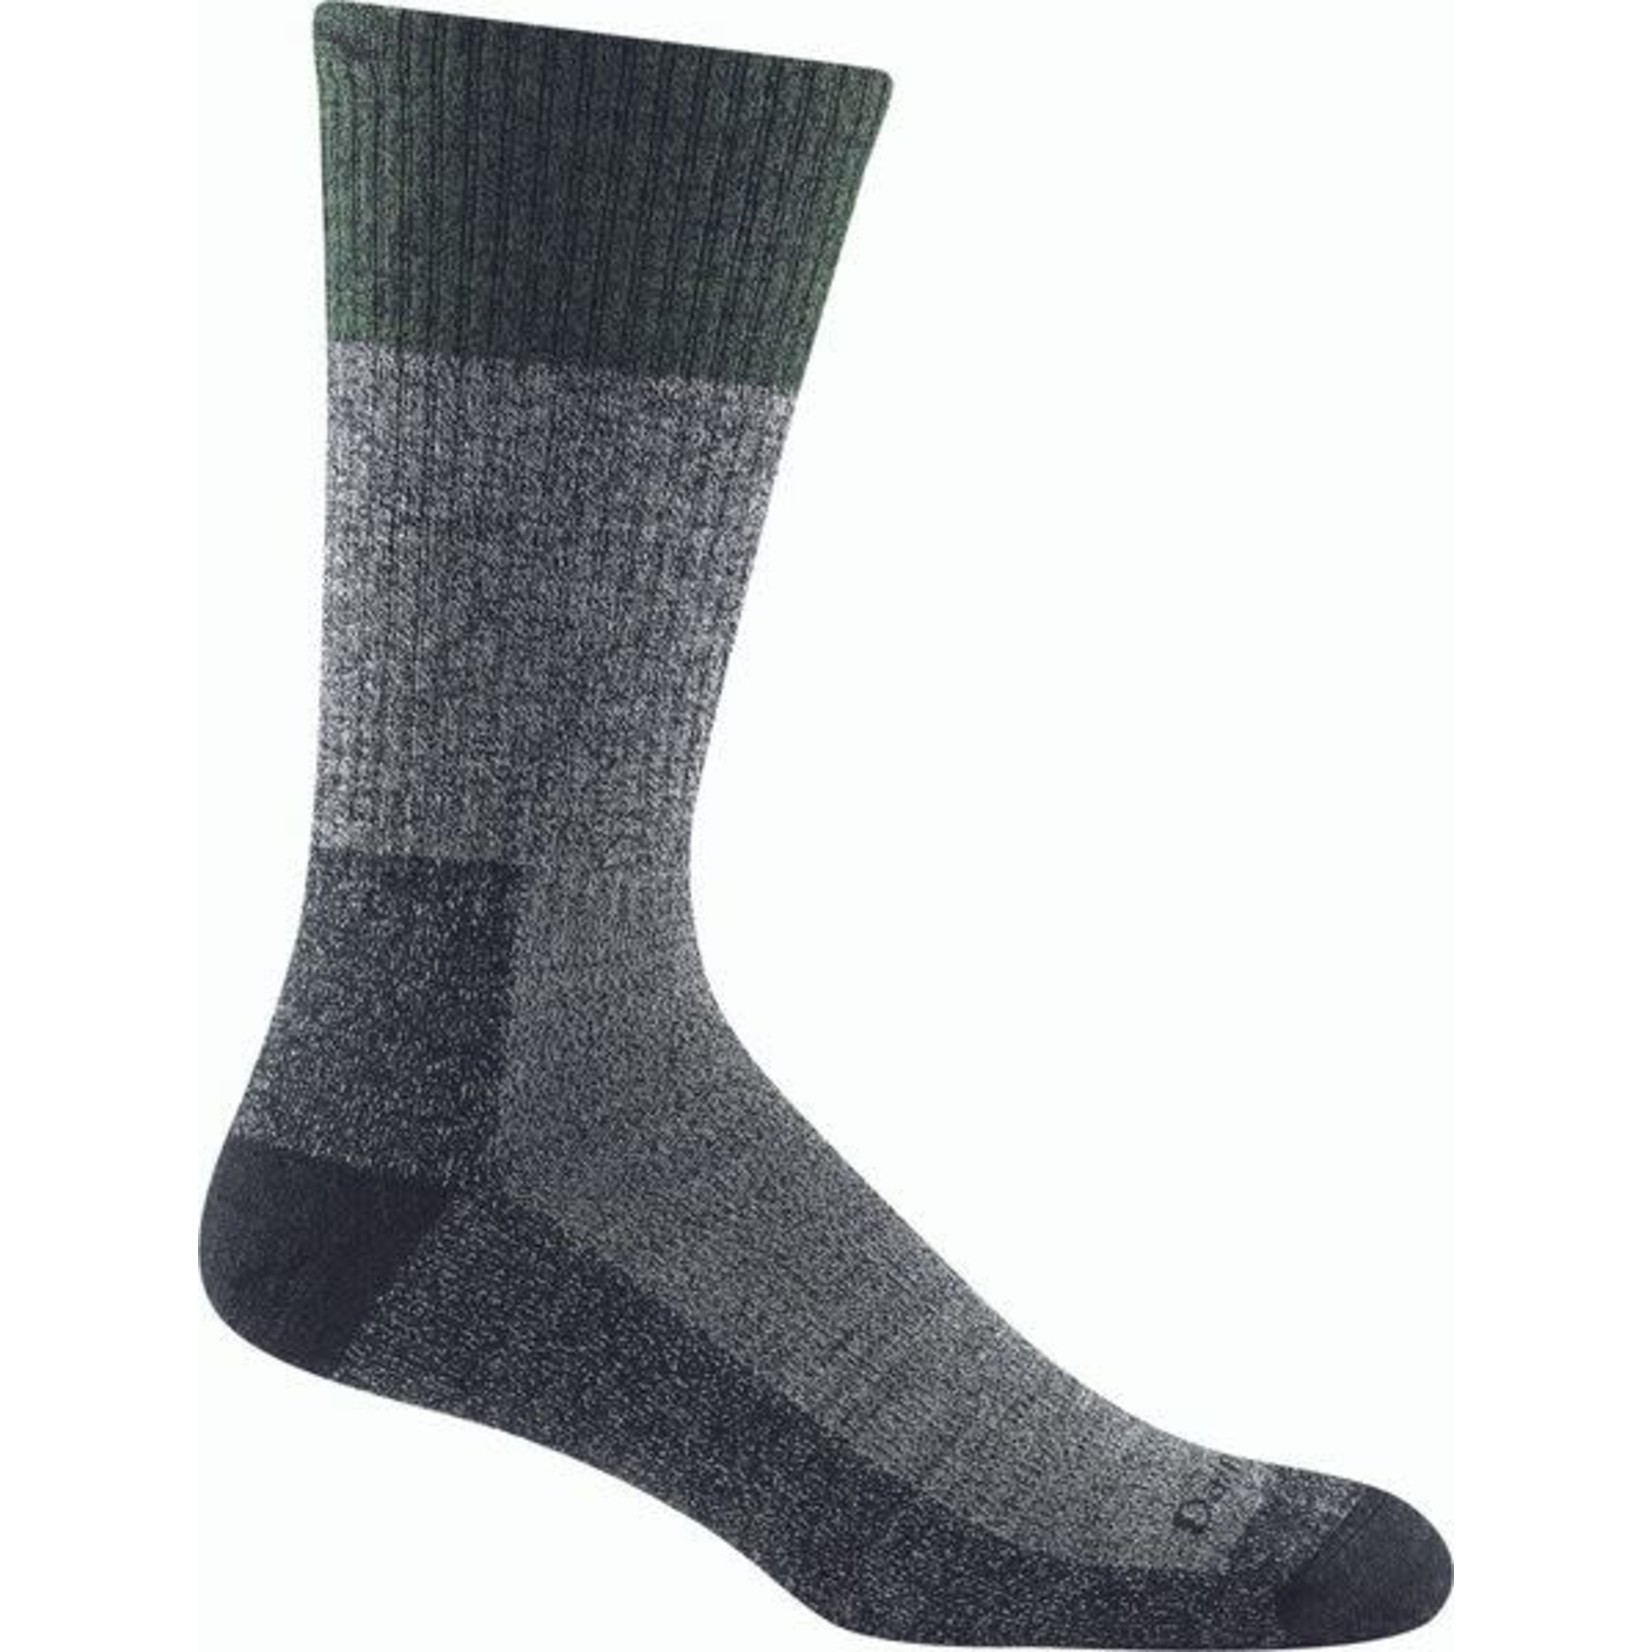 Darn Tough DT Men's - 'Scout' Boot Sock, Midweight w/Cushion (1981)